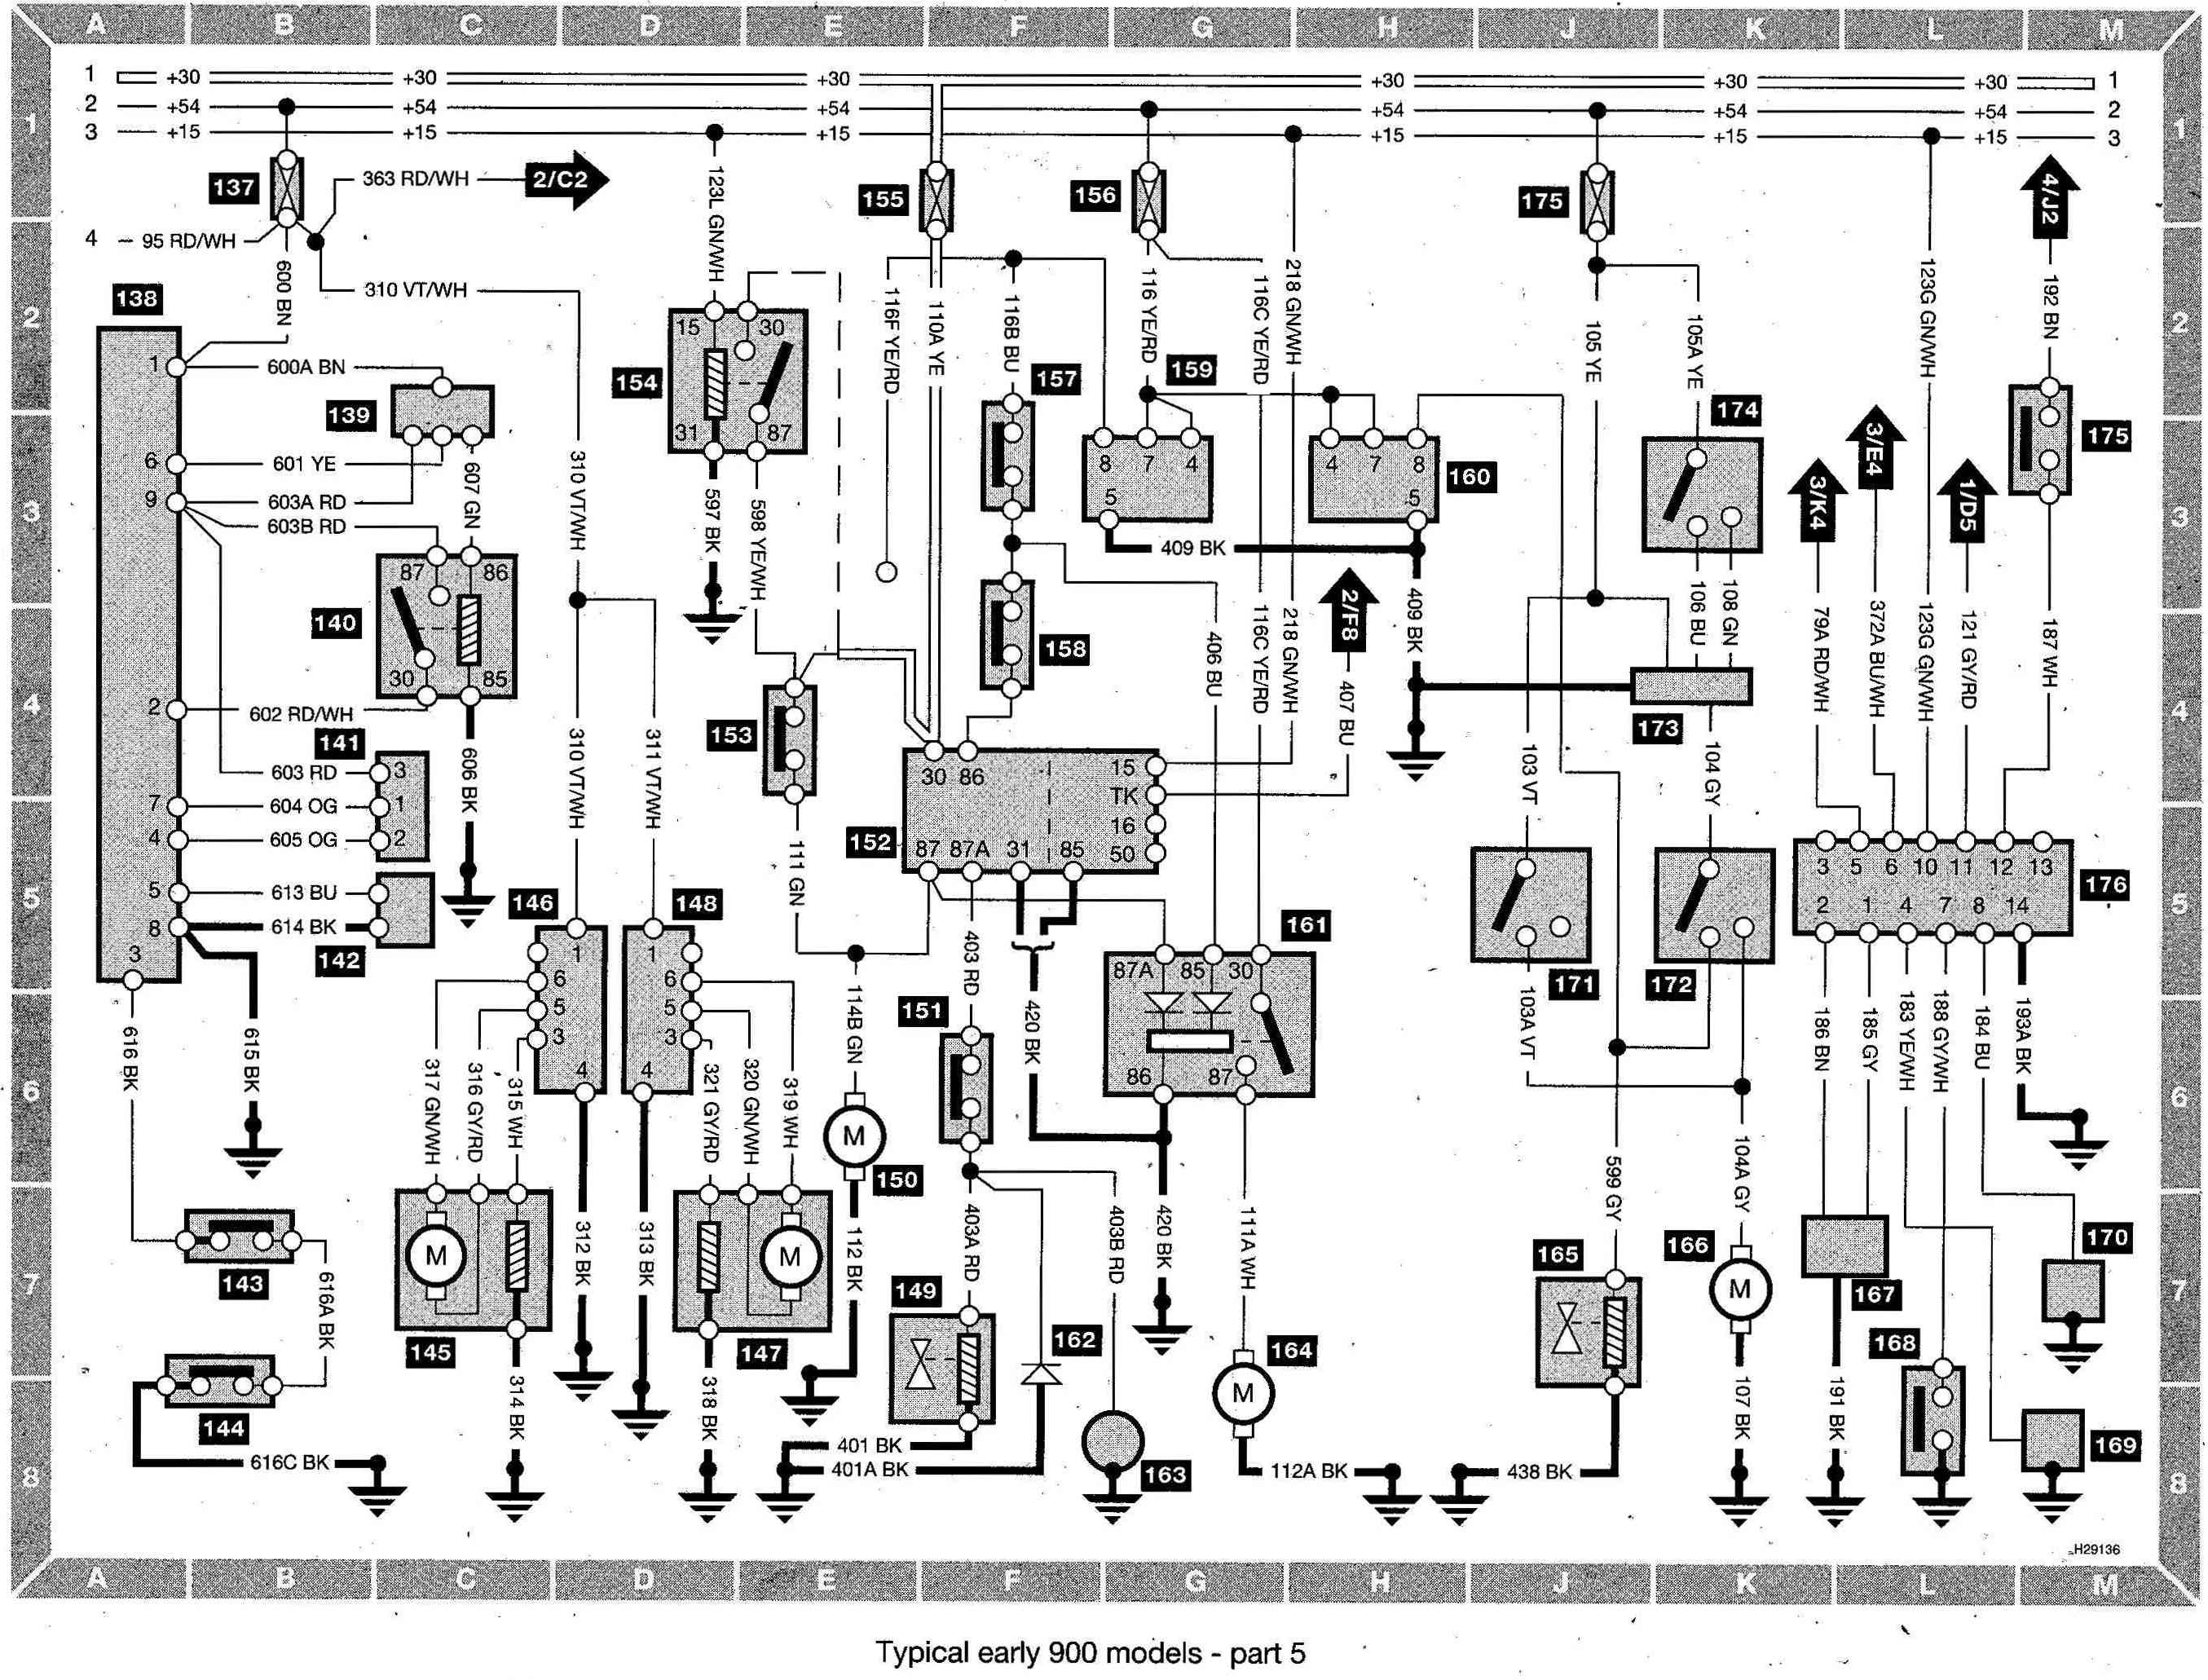 Well Saab 9 3 Radio Wiring Diagram Saab 900 Radio Wiring Diagram